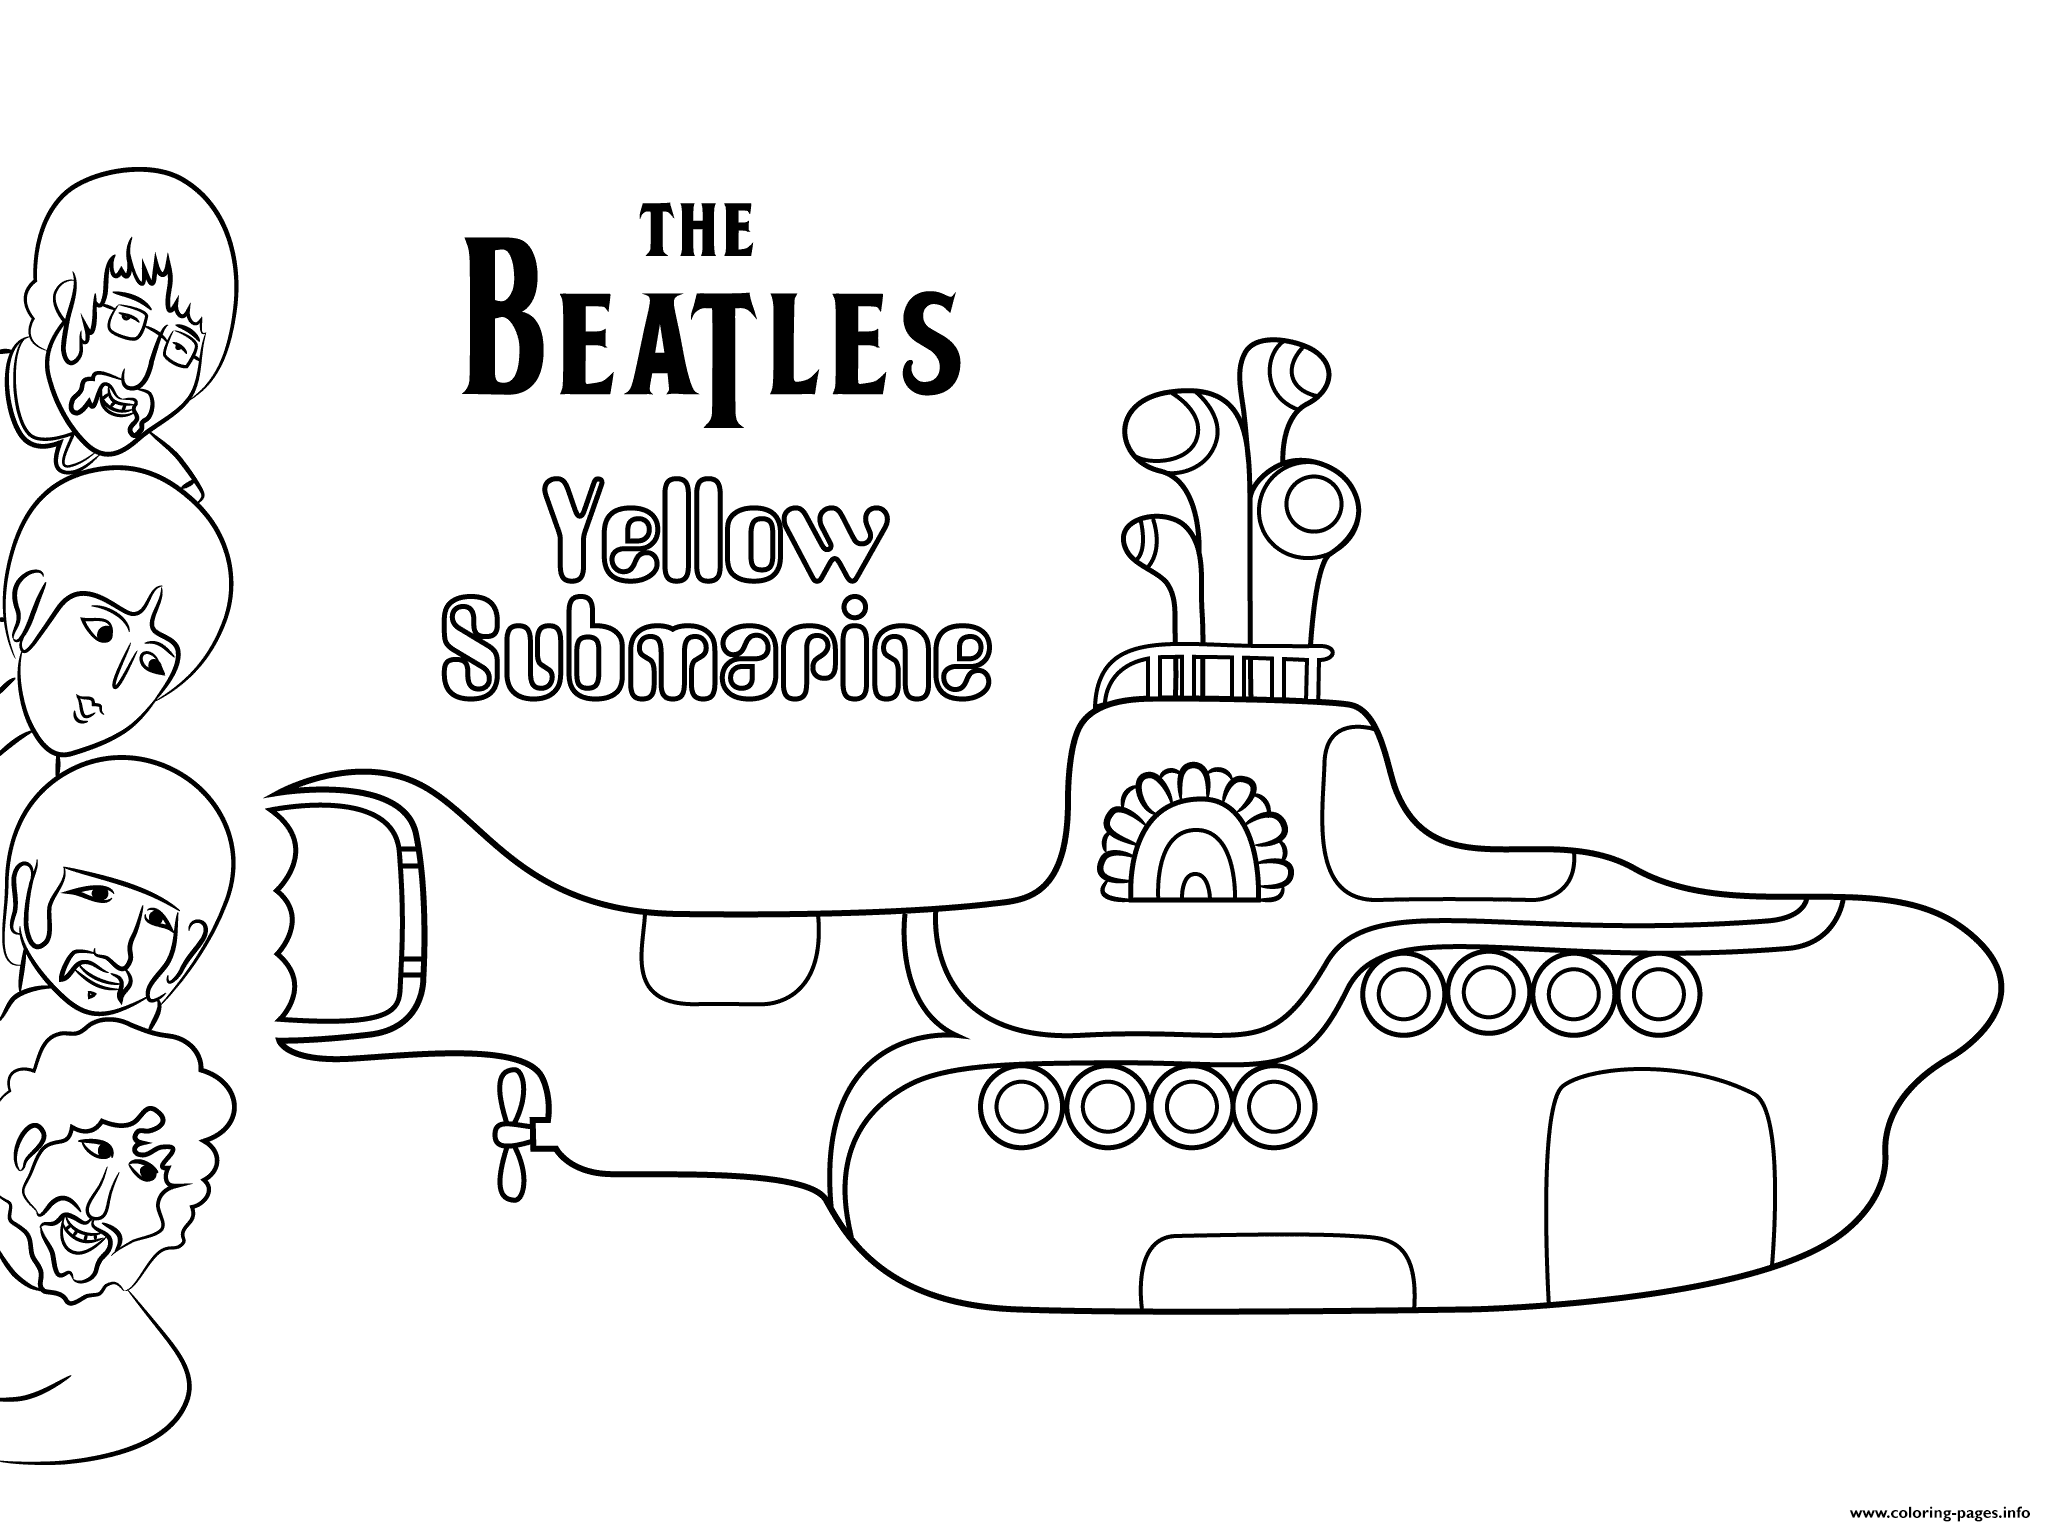 Submarine Coloring Pages Submarine Coloring Pages Submarine ... | 1526x2046